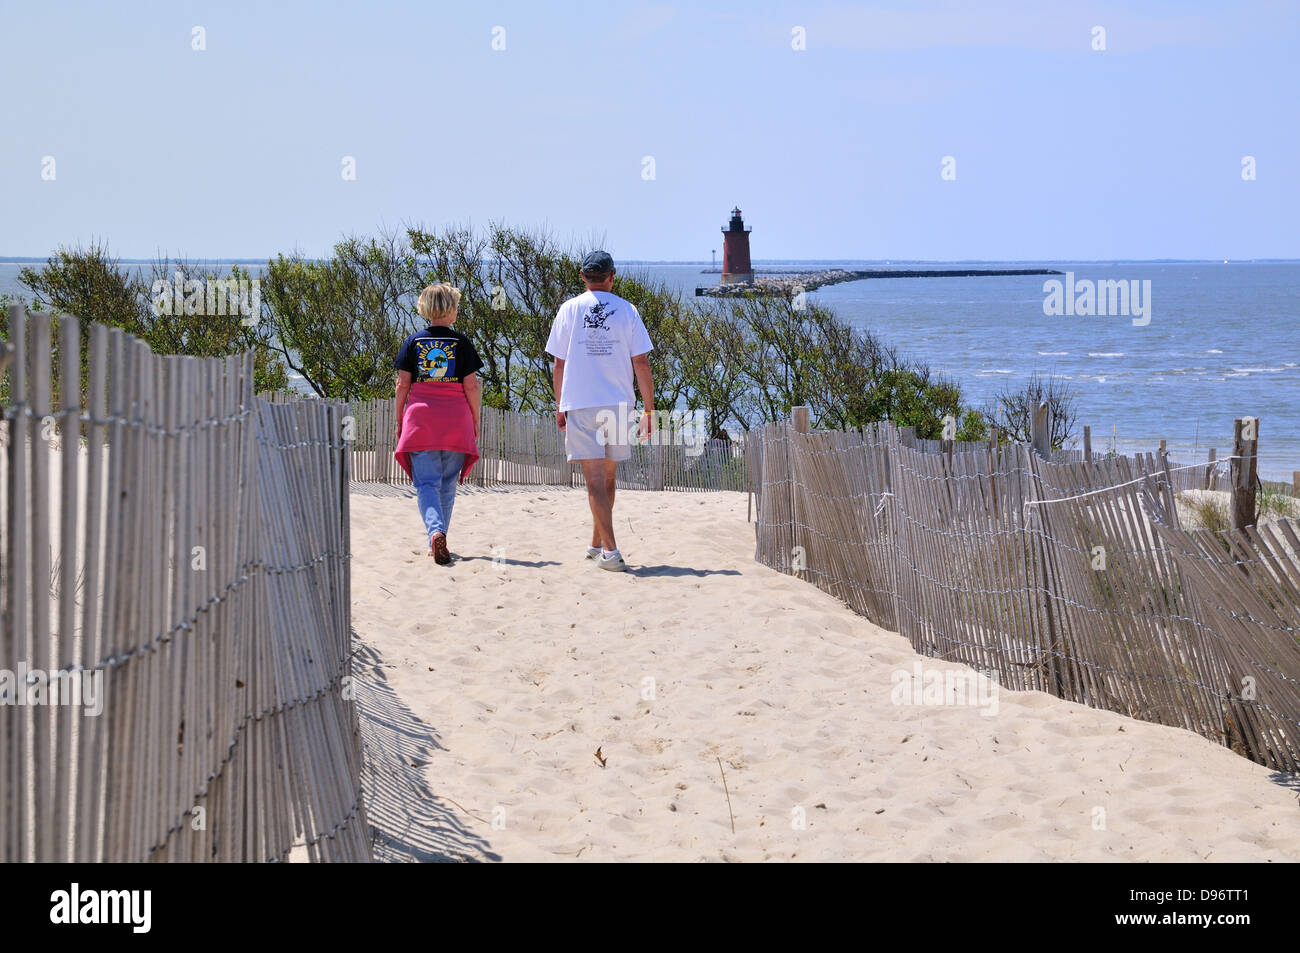 Couple going for a stroll at Cape Henlopen State Park, Lewes, Delaware - Stock Image